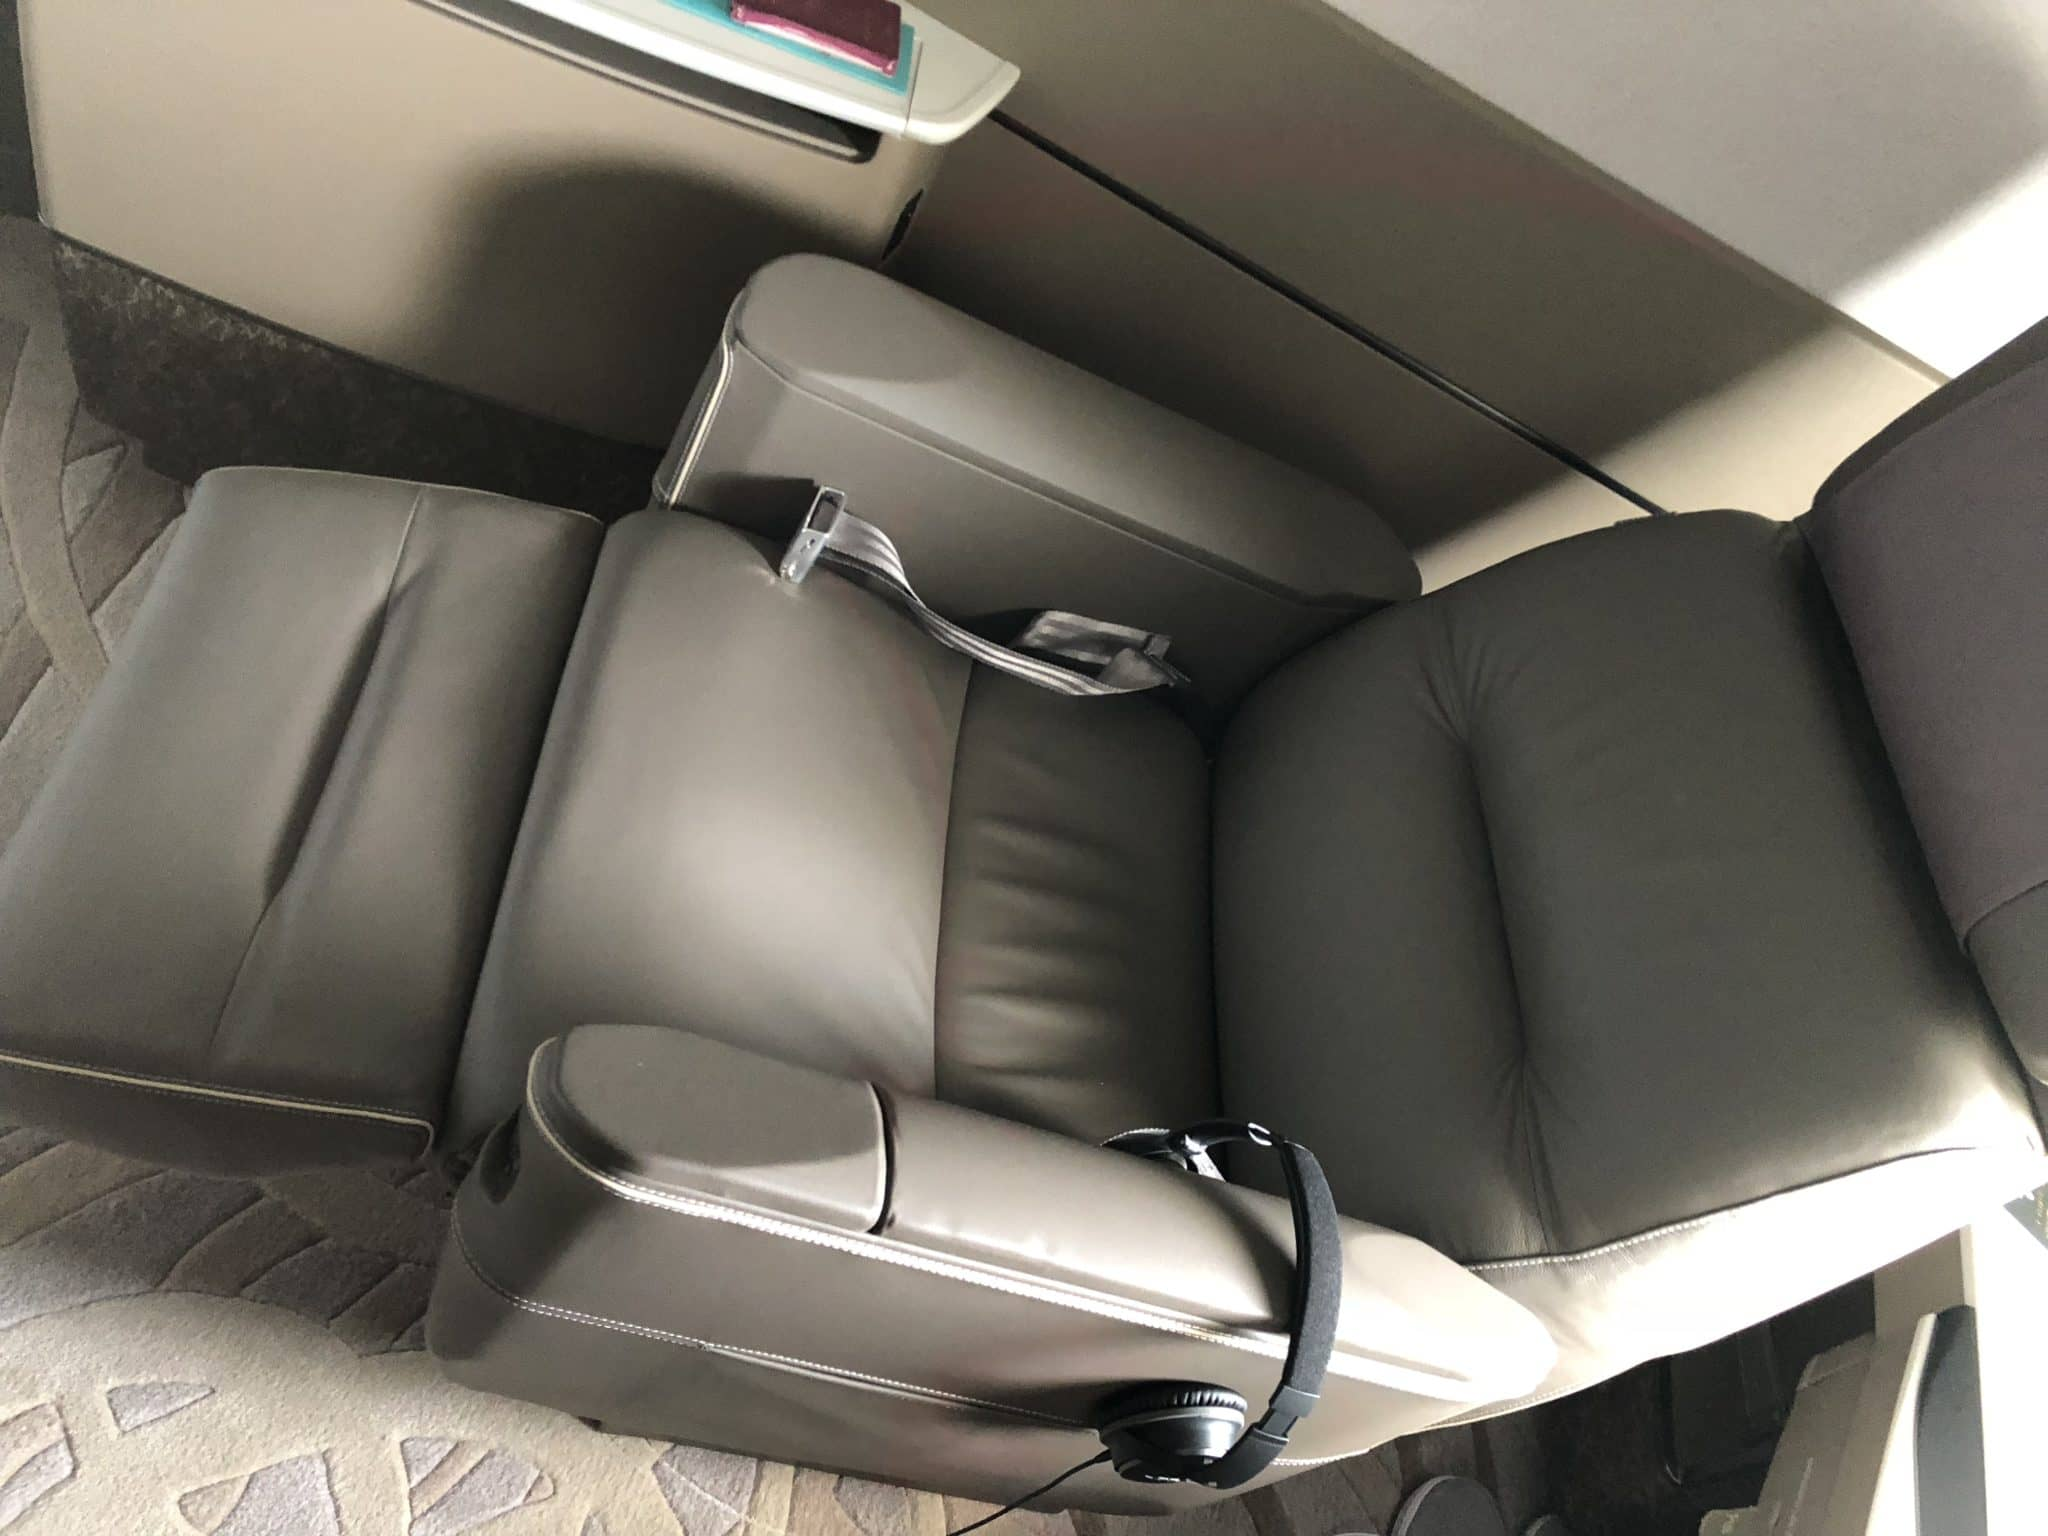 Singapore Airlines neue First Class A380 Sitz in Recliner Position